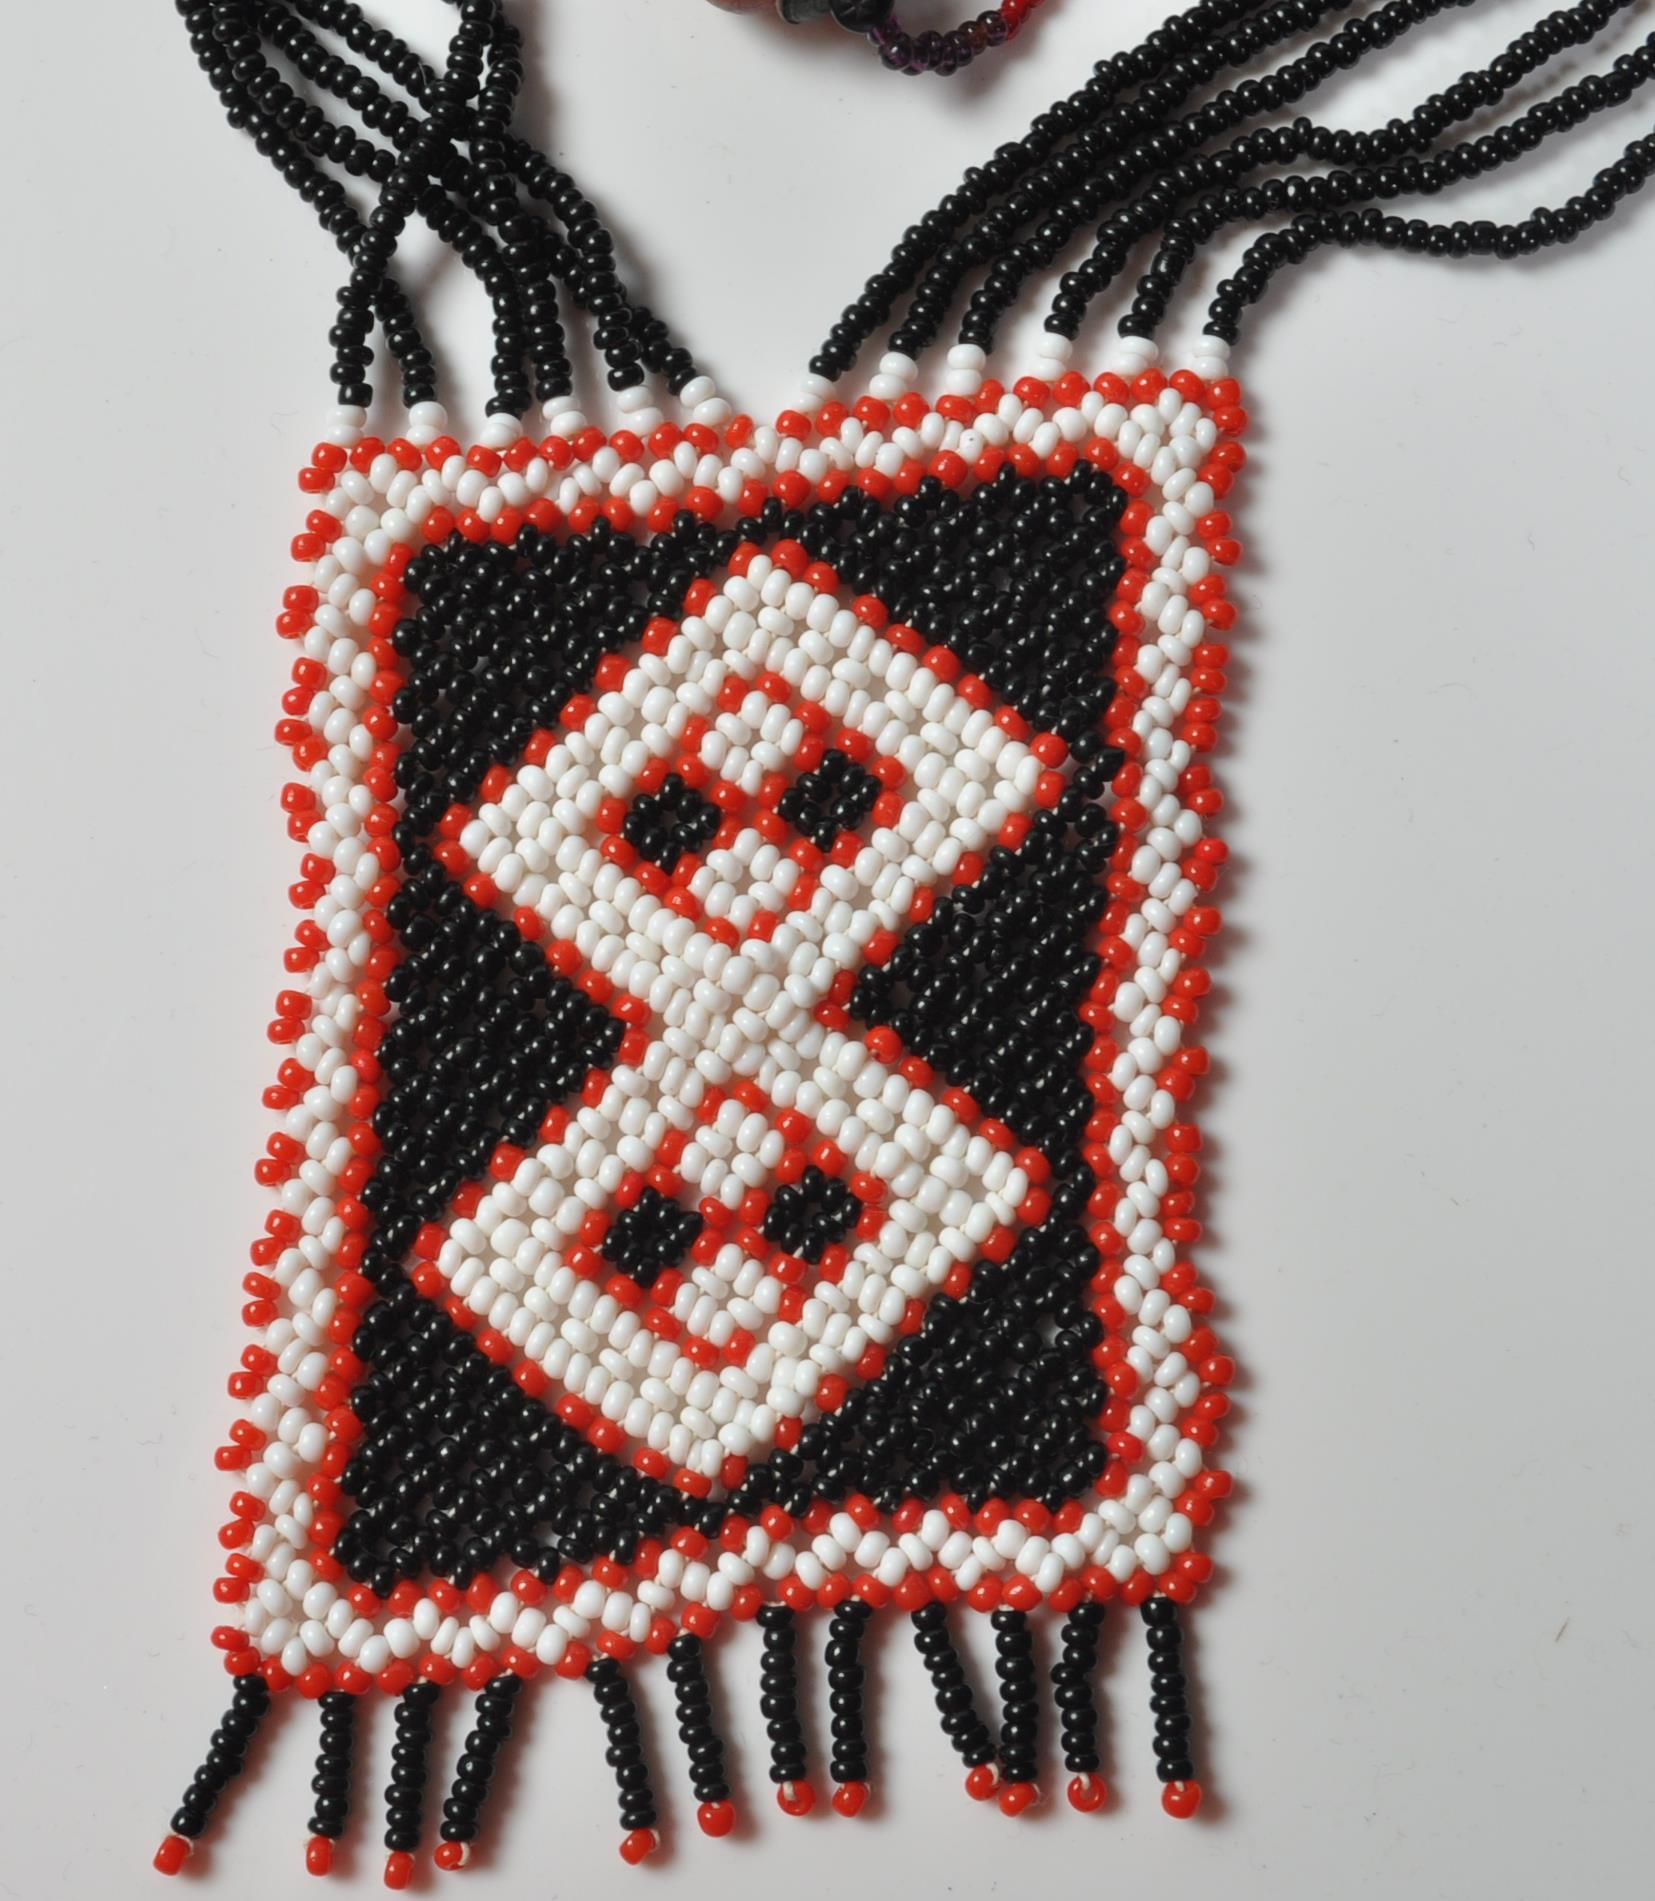 COLLECTION OF ZULU AFRICAN AND NATIVE AMERCIAN JEWELLERY. - Image 4 of 9